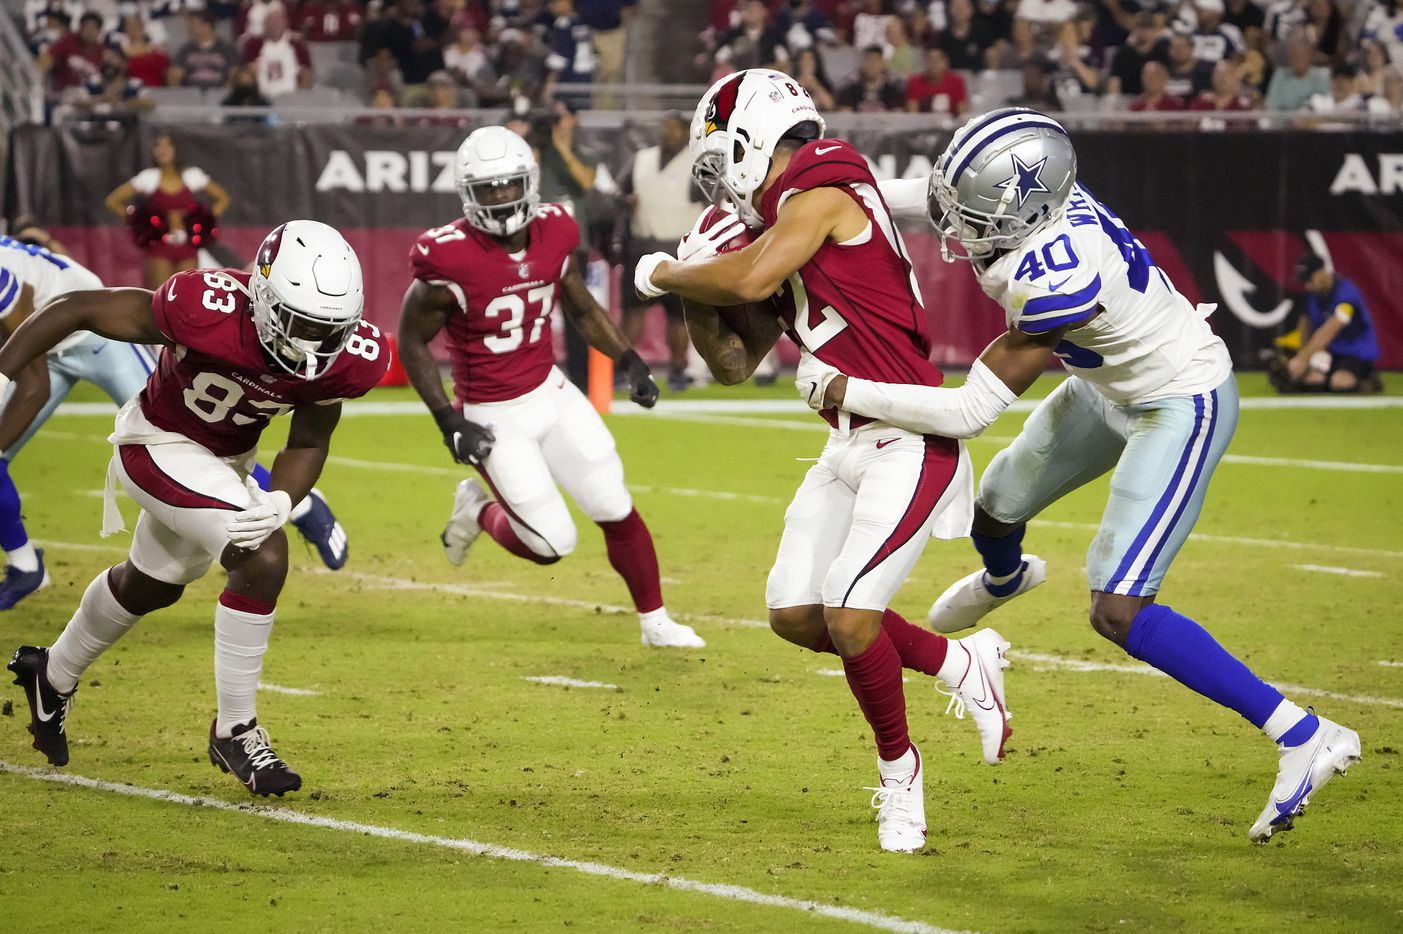 Dallas Cowboys cornerback Nahshon Wright (40) brings down Arizona Cardinals returner Andre Baccellia (82) in kick coverage during the second half of a preseason NFL football game at State Farm Stadium on Friday, Aug. 13, 2021, in Glendale, Ariz.